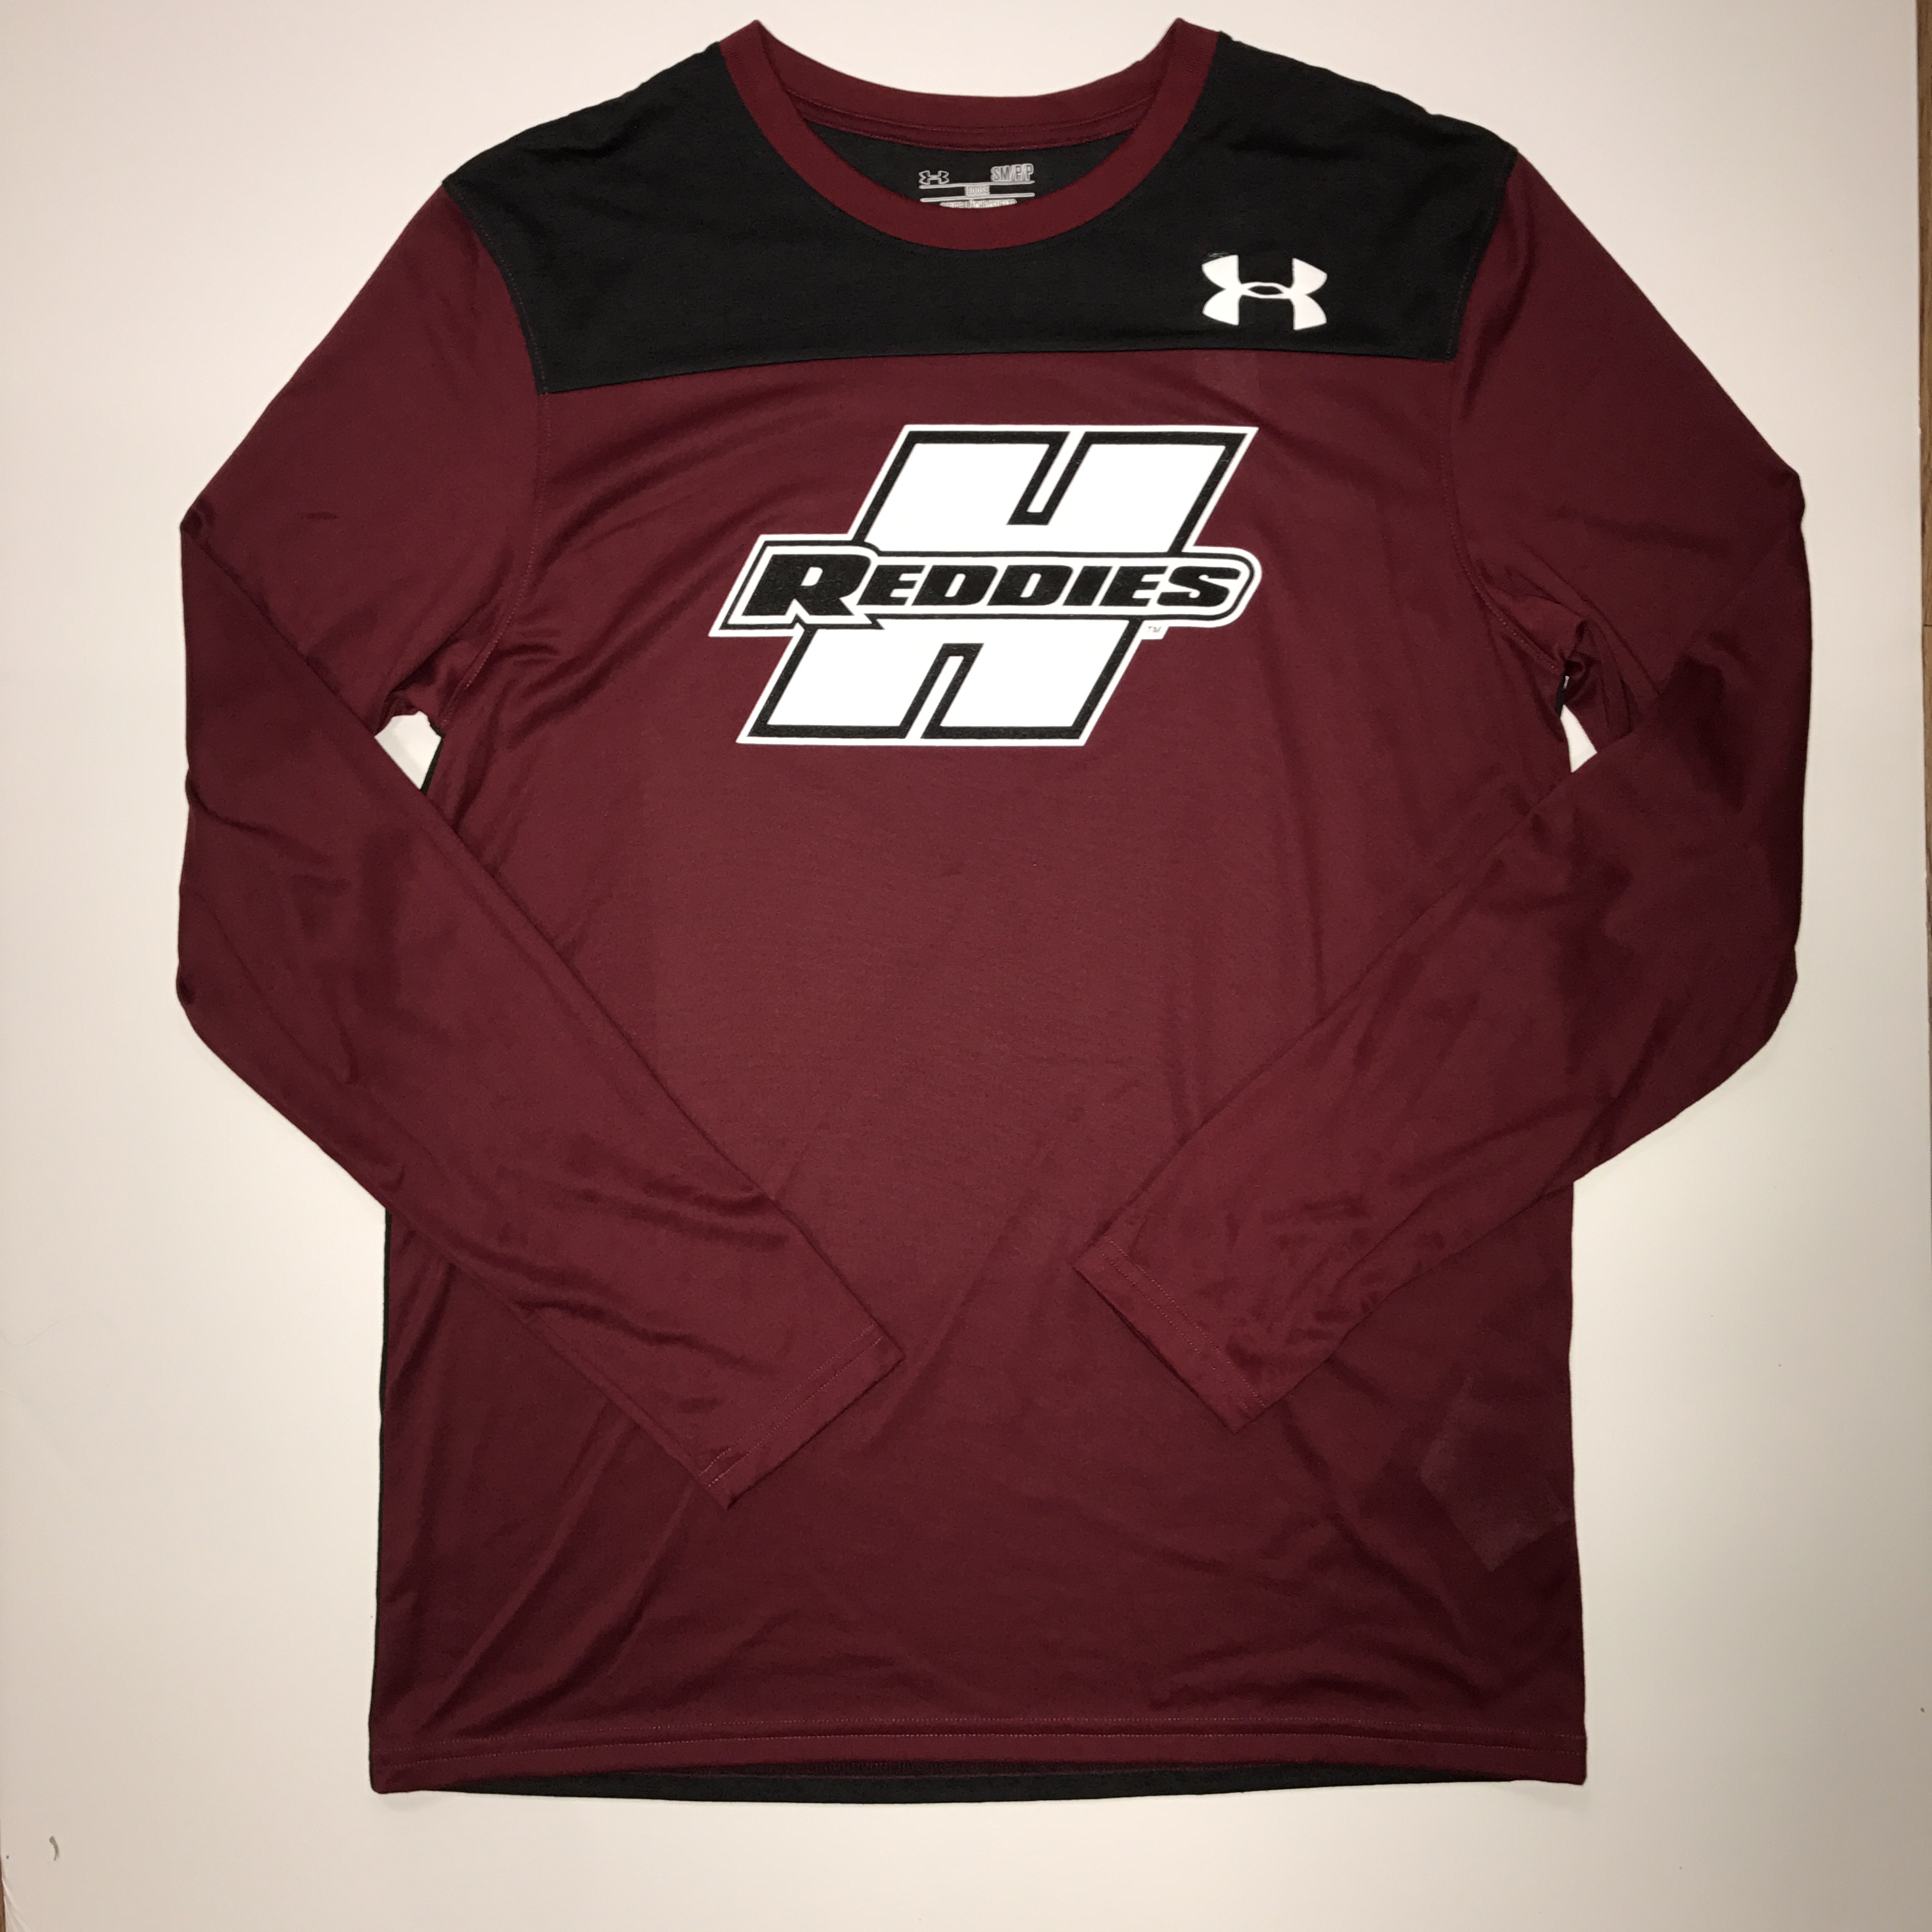 Under Armour Long-Sleeve Shirt